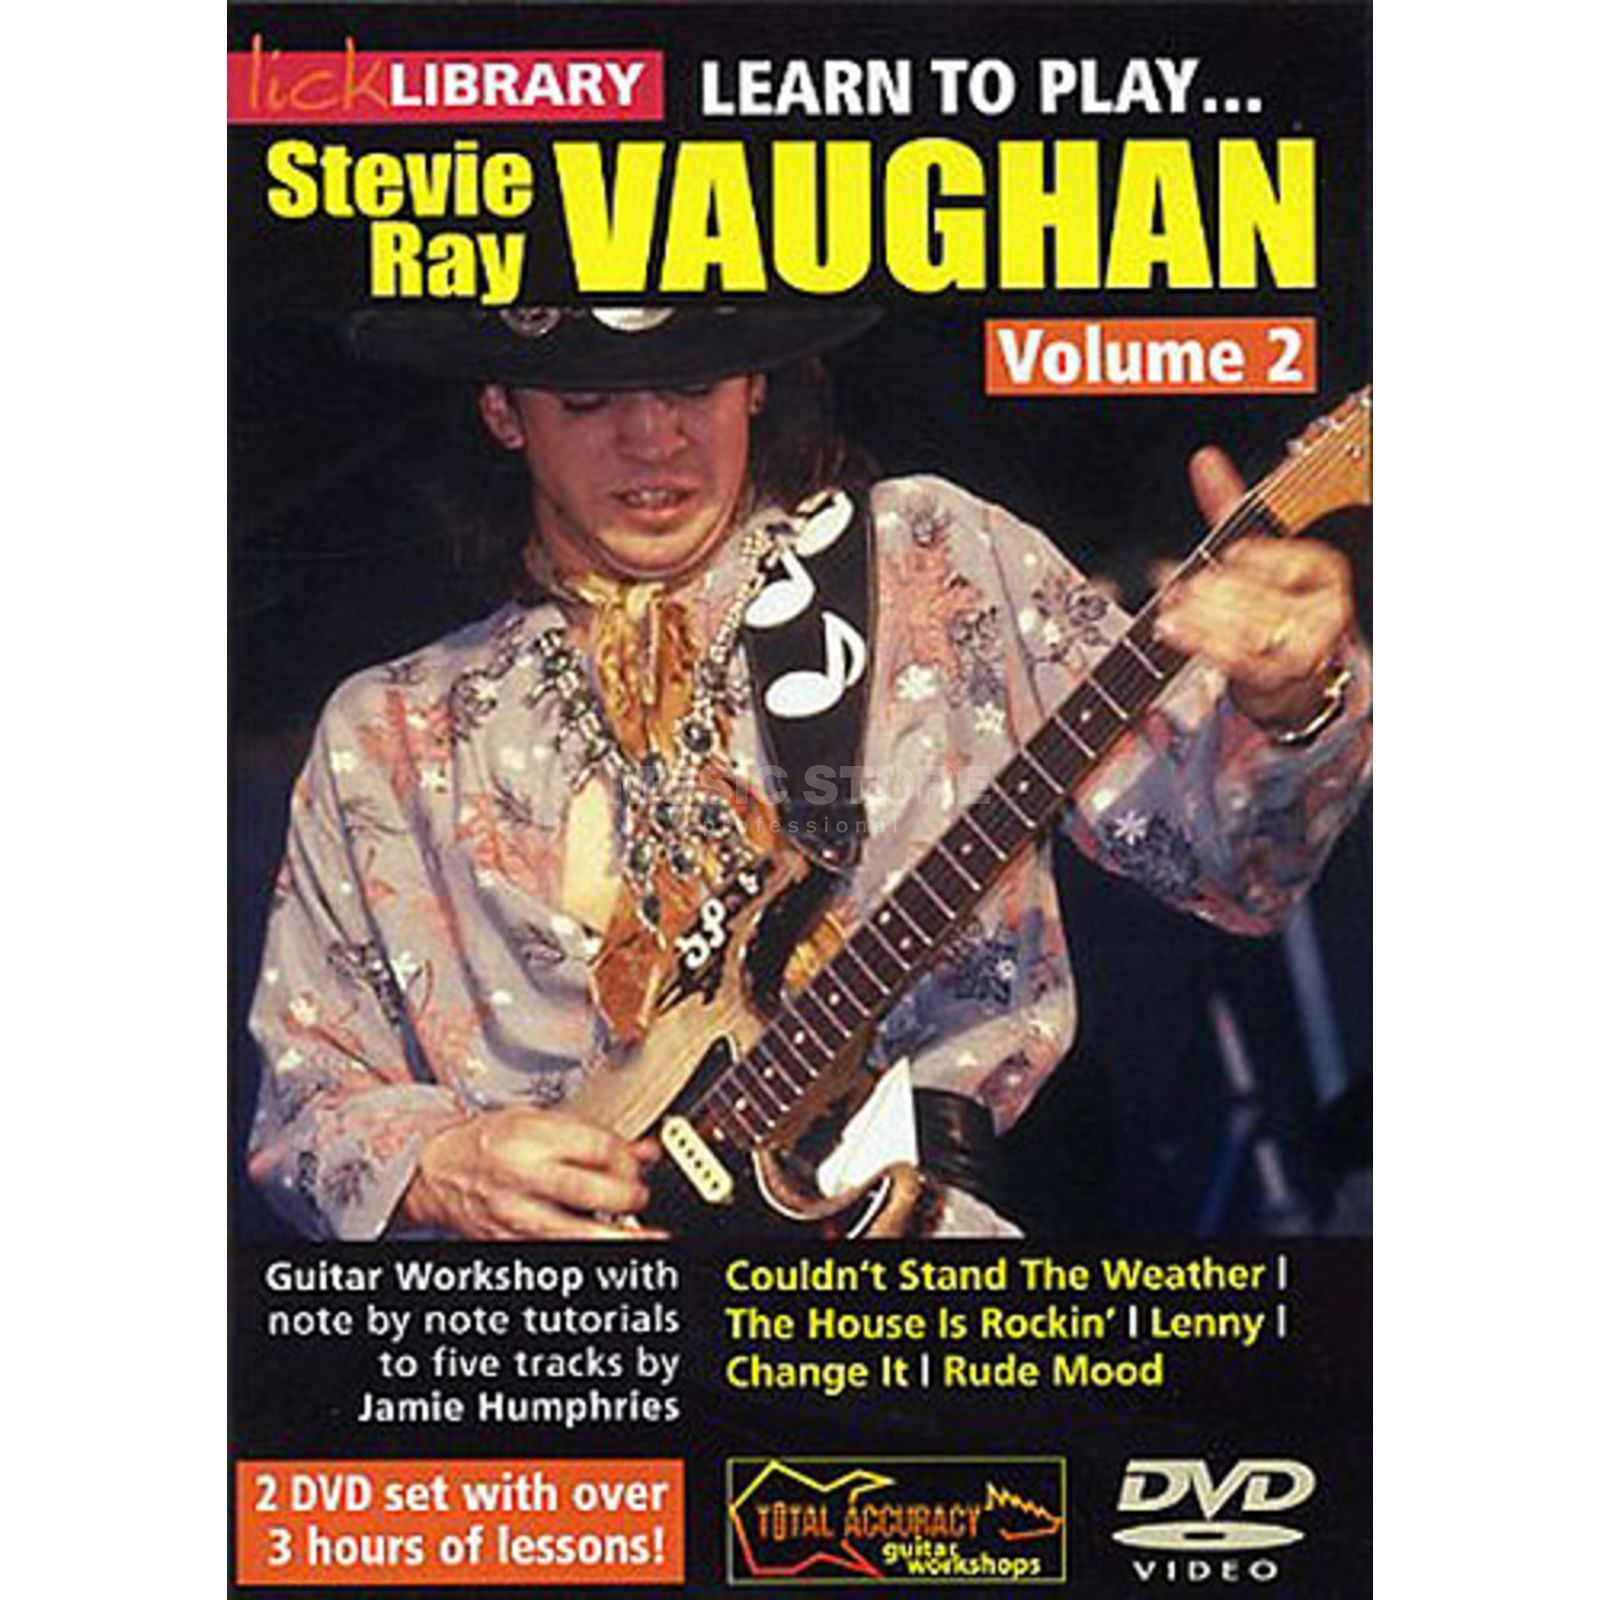 Roadrock International Lick library - S R Vaughan 2 Learn to play (Guitar), DVD Produktbillede